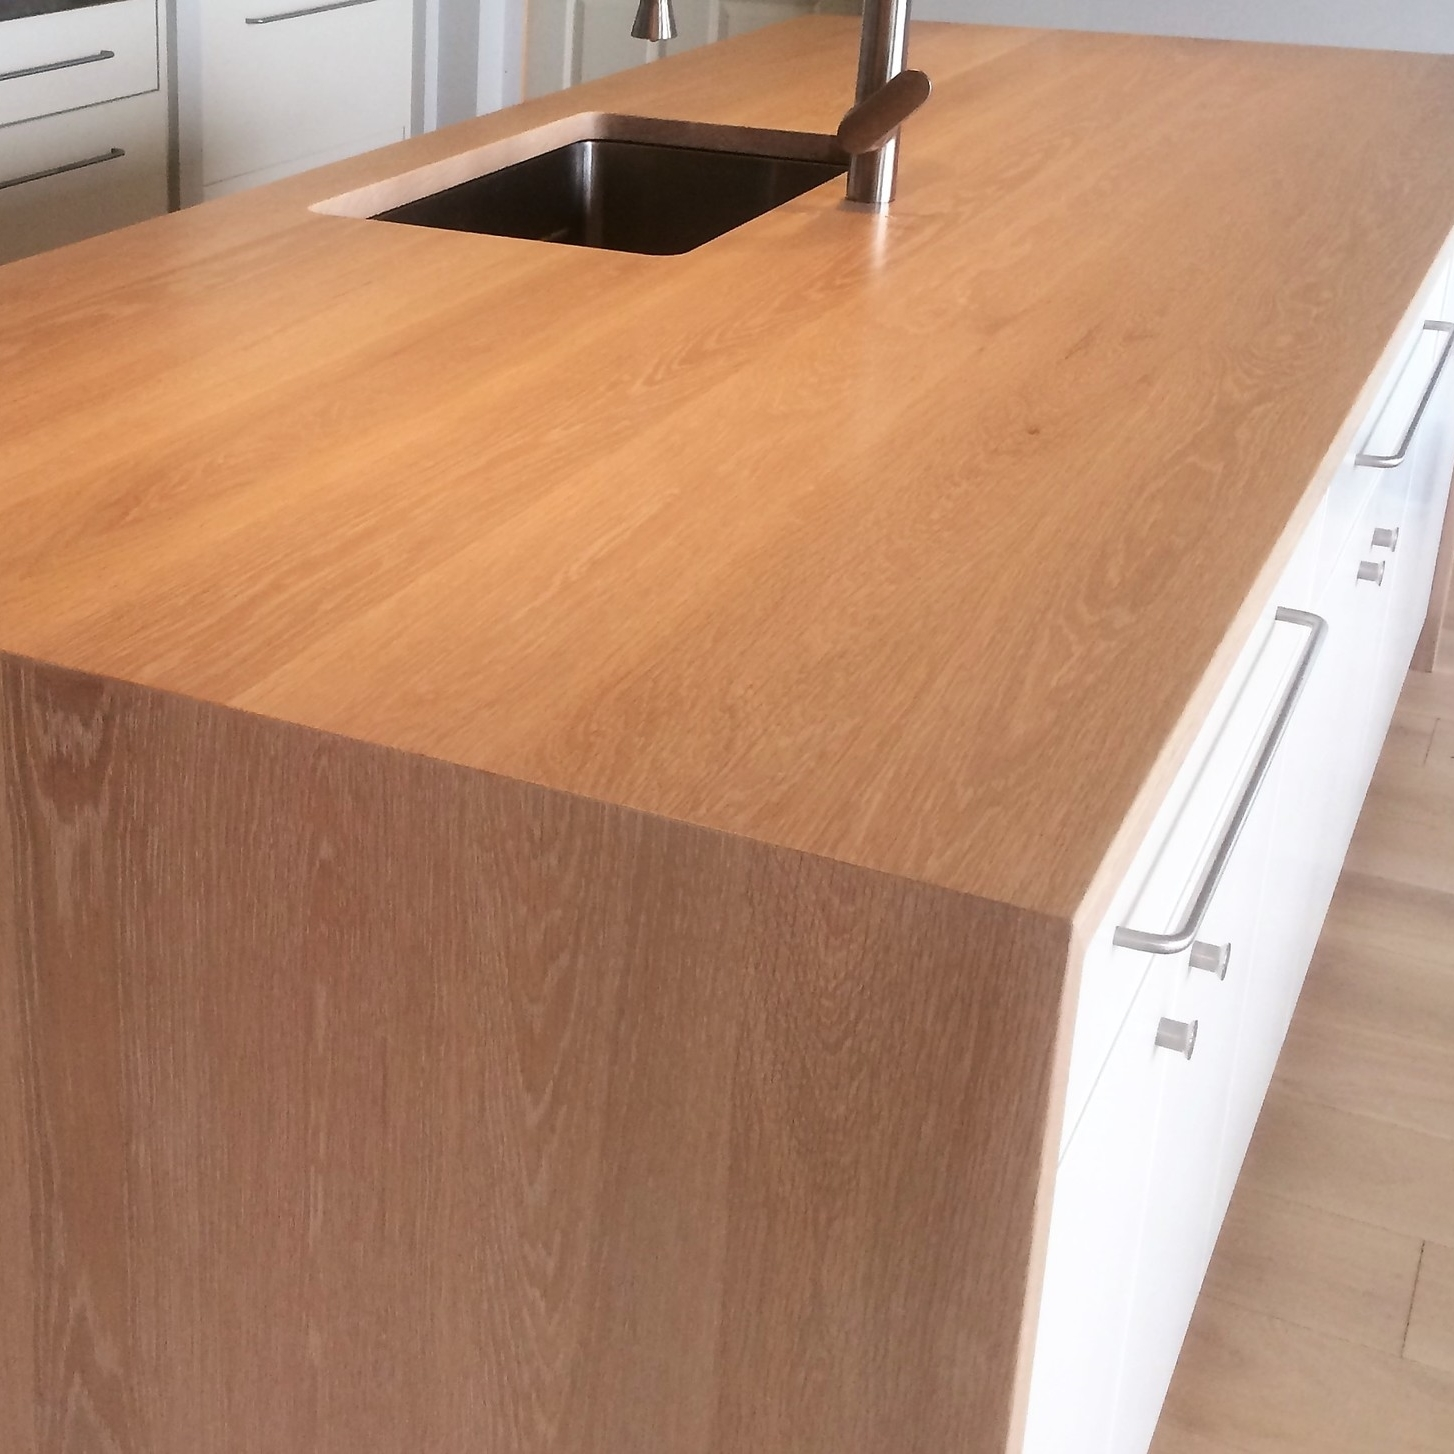 Waterfall counter top, made from White Oak.